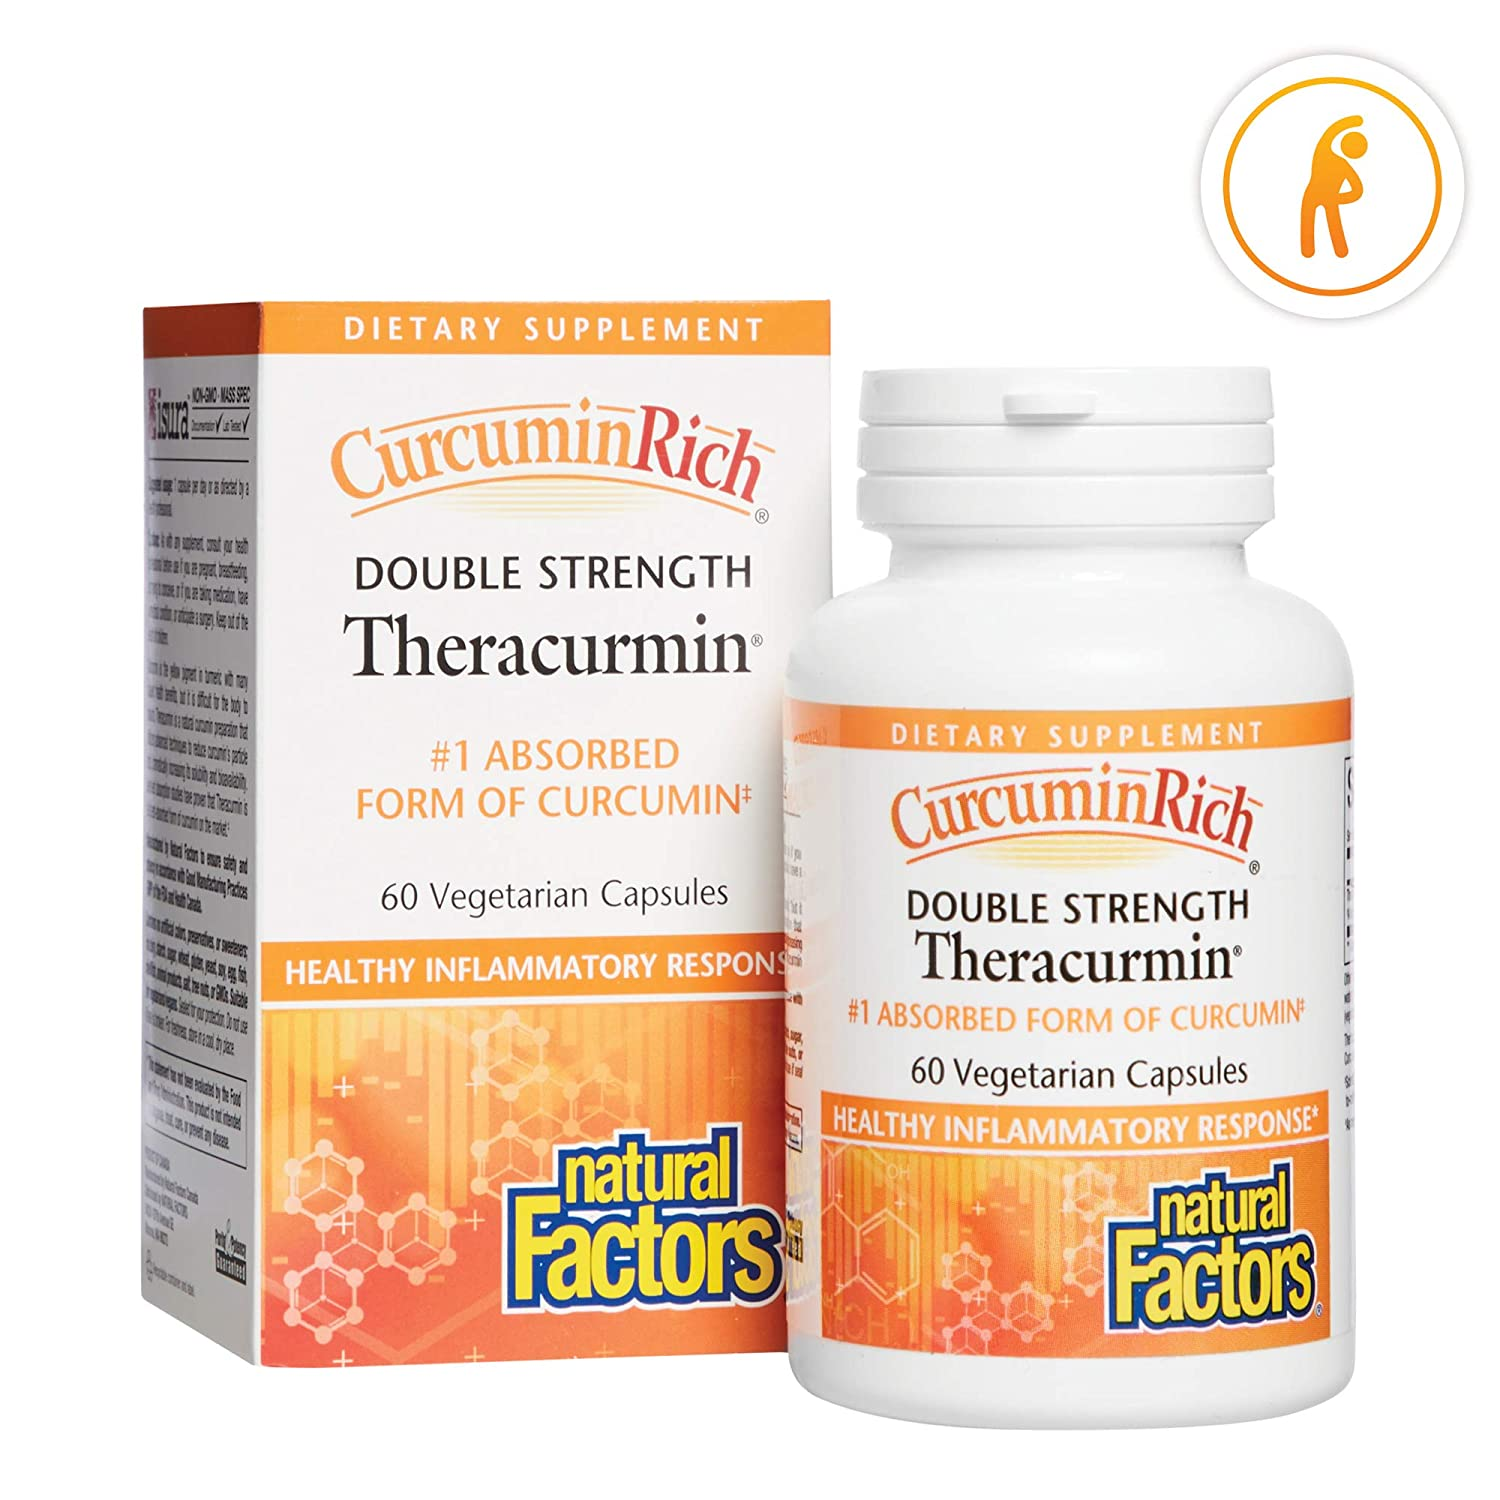 CurcuminRich Double Strength Theracurmin by Natural Factors, Supports Natural Inflammatory Response, Joint and Heart Function, 60 capsules 60 servings